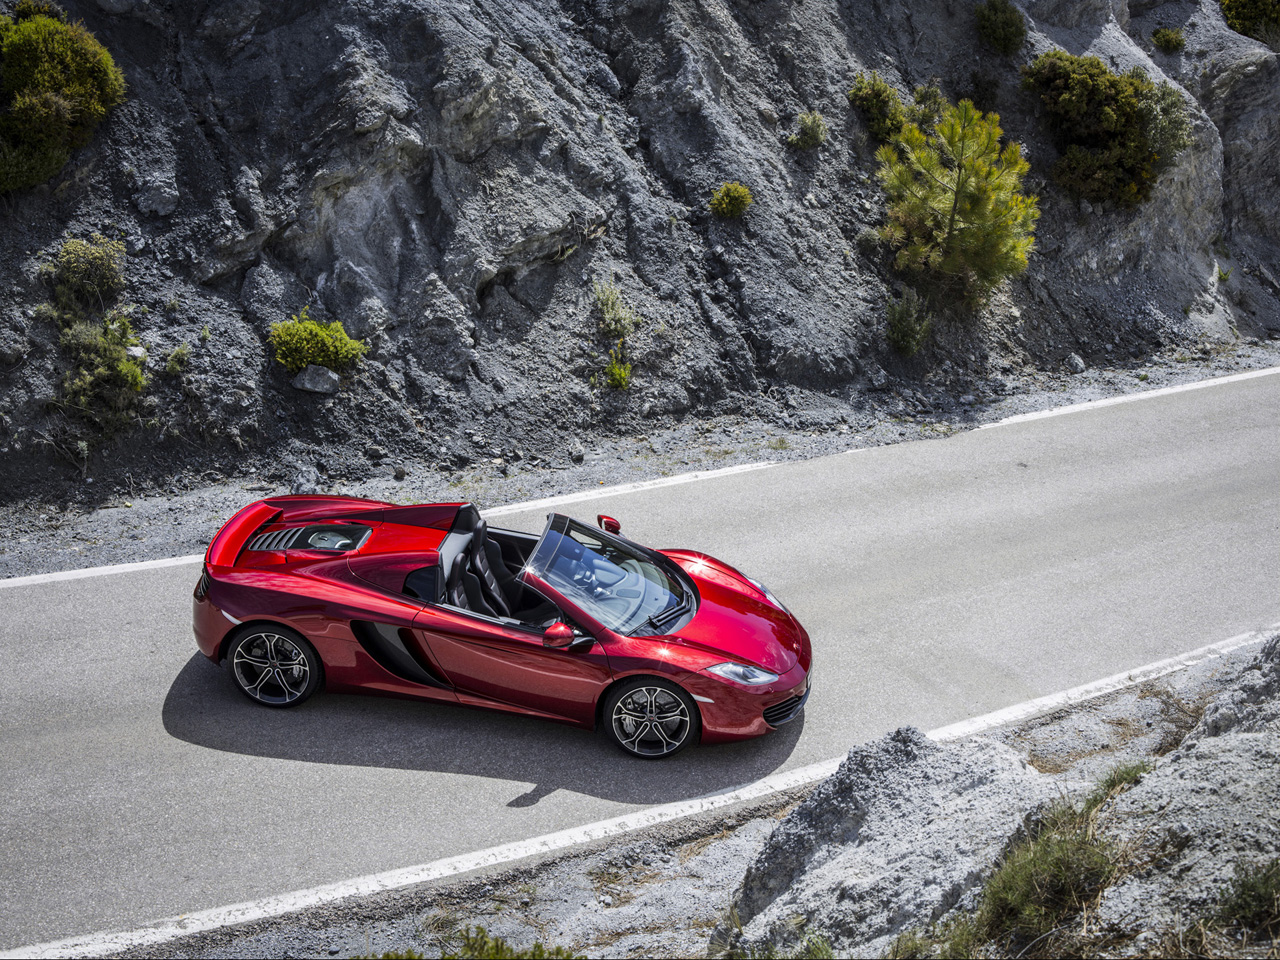 CG McLAREN MP4-12C SPIDER